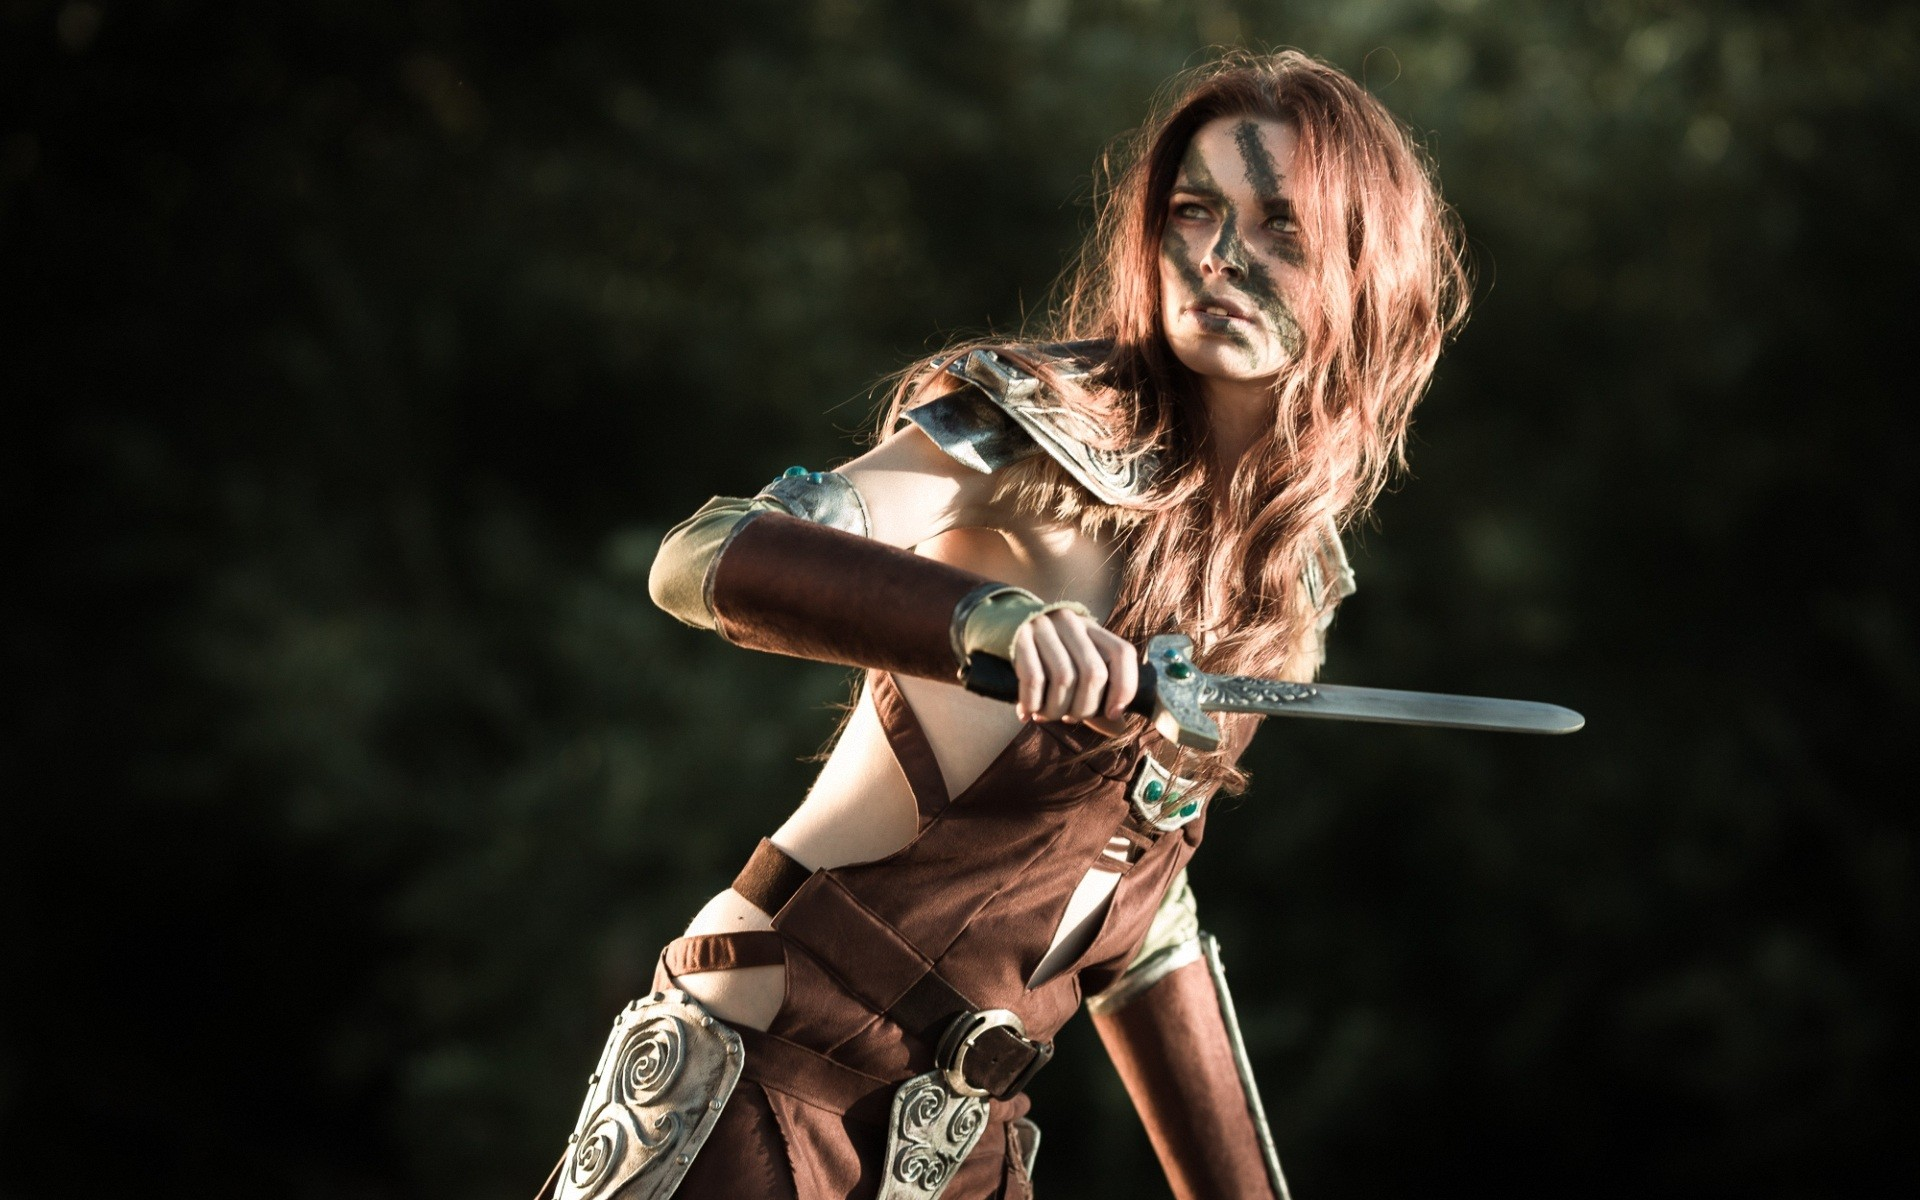 cosplay costumes for sale